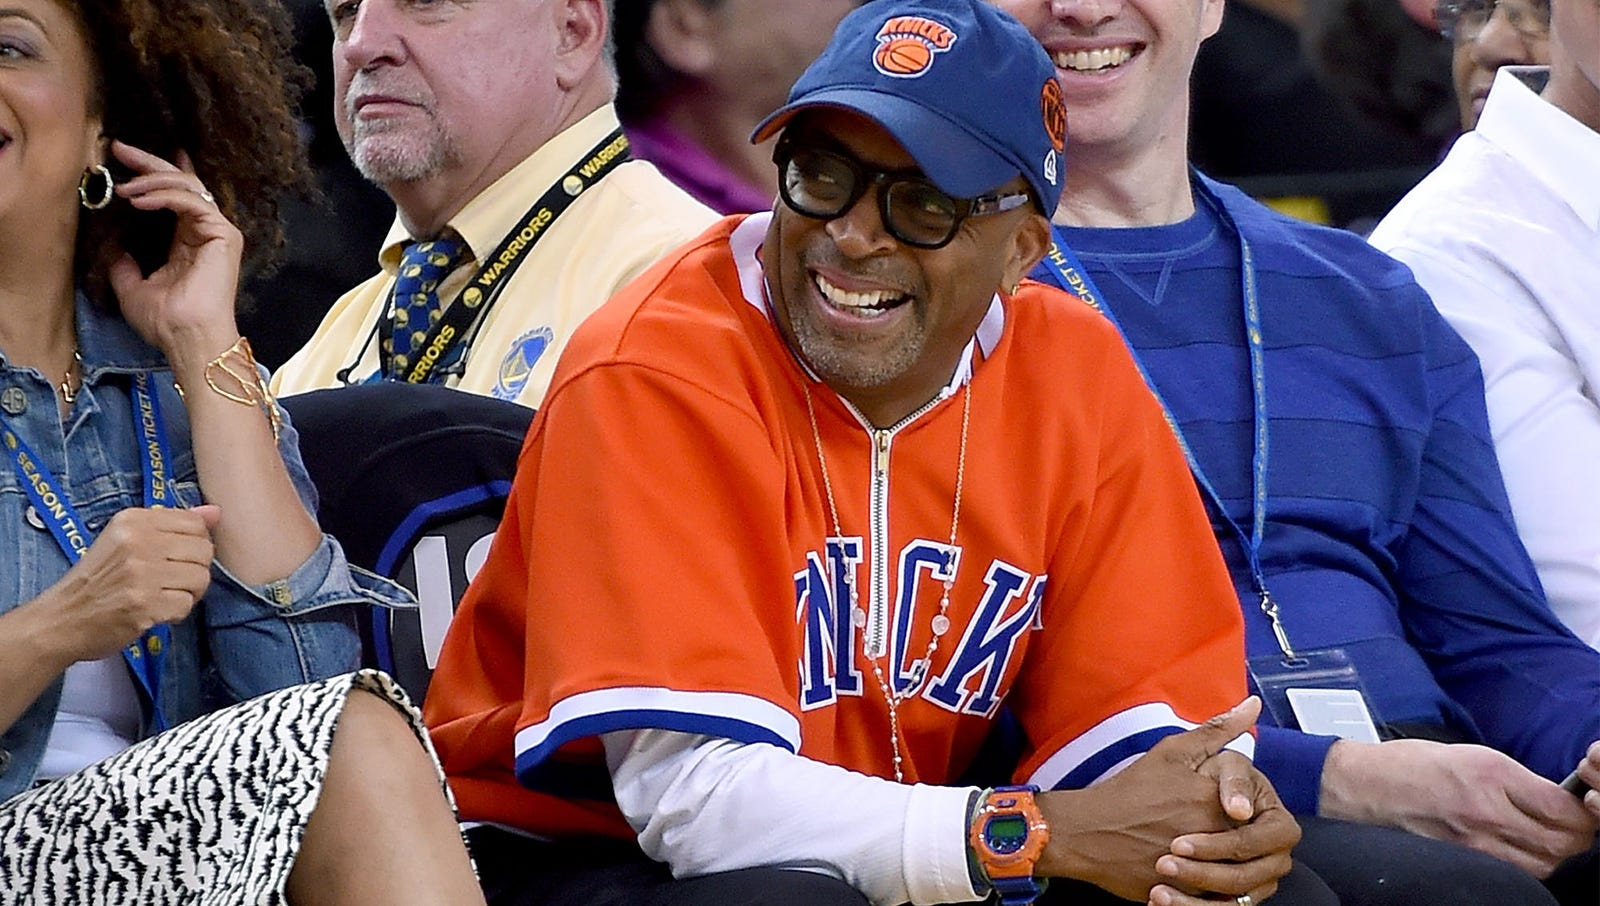 Spike Lee: This critically acclaimed director has been trying to fix the Knicks' third act problems for the past two decades